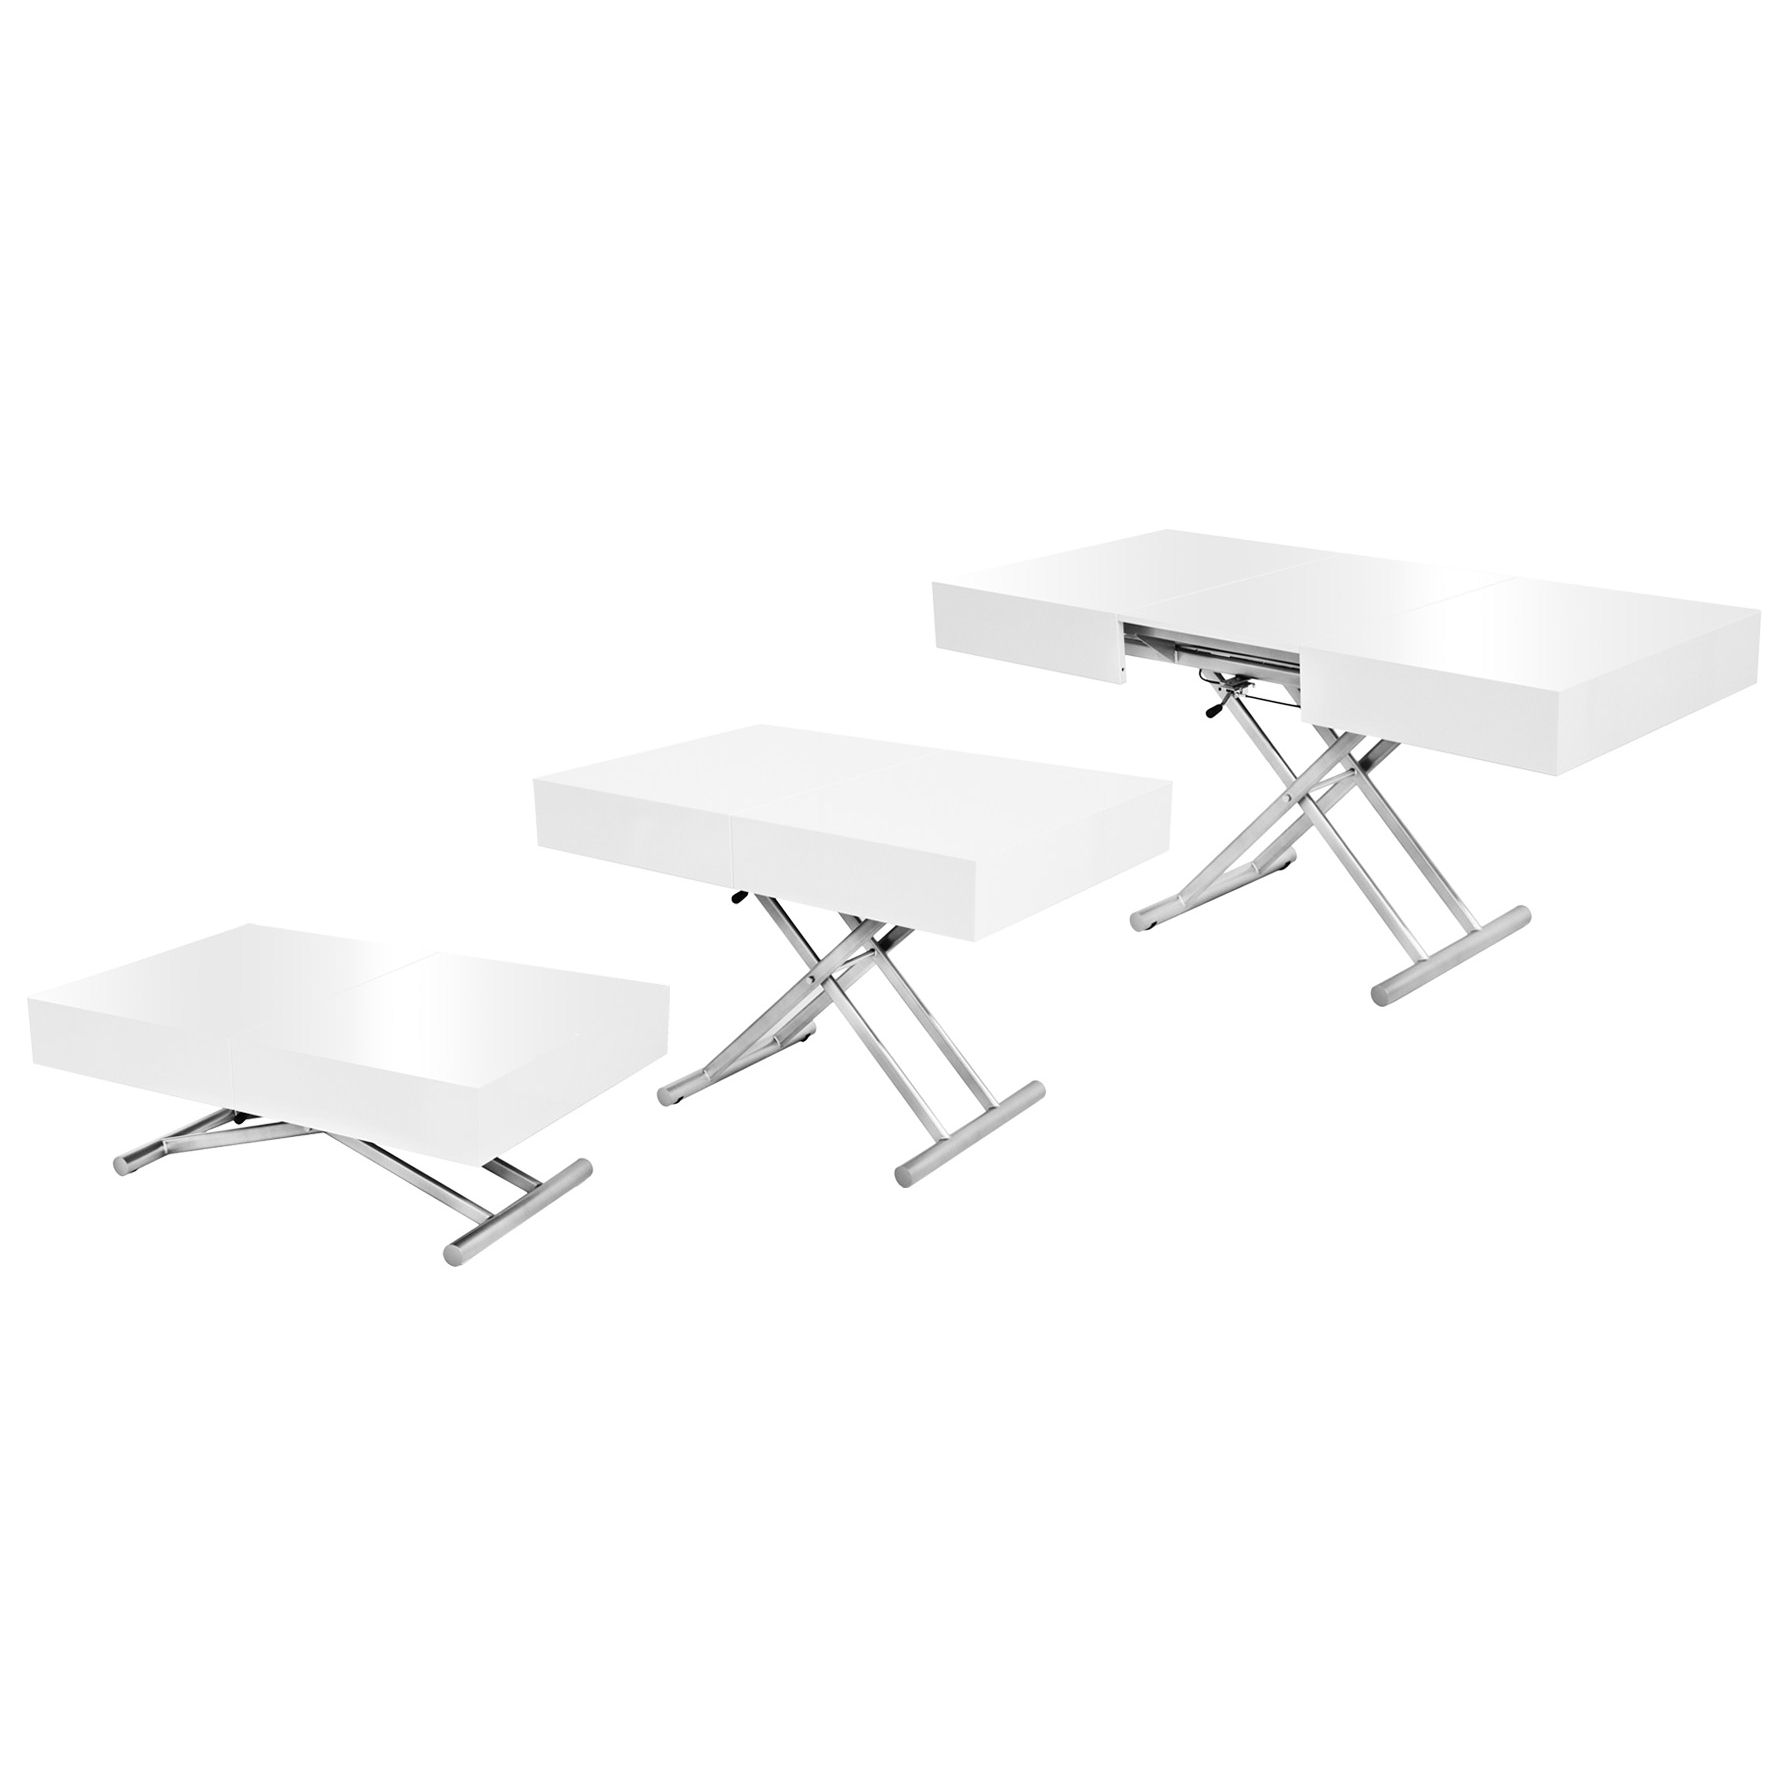 Deco in paris table basse relevable extensible blanche - Mecanisme table basse relevable ...